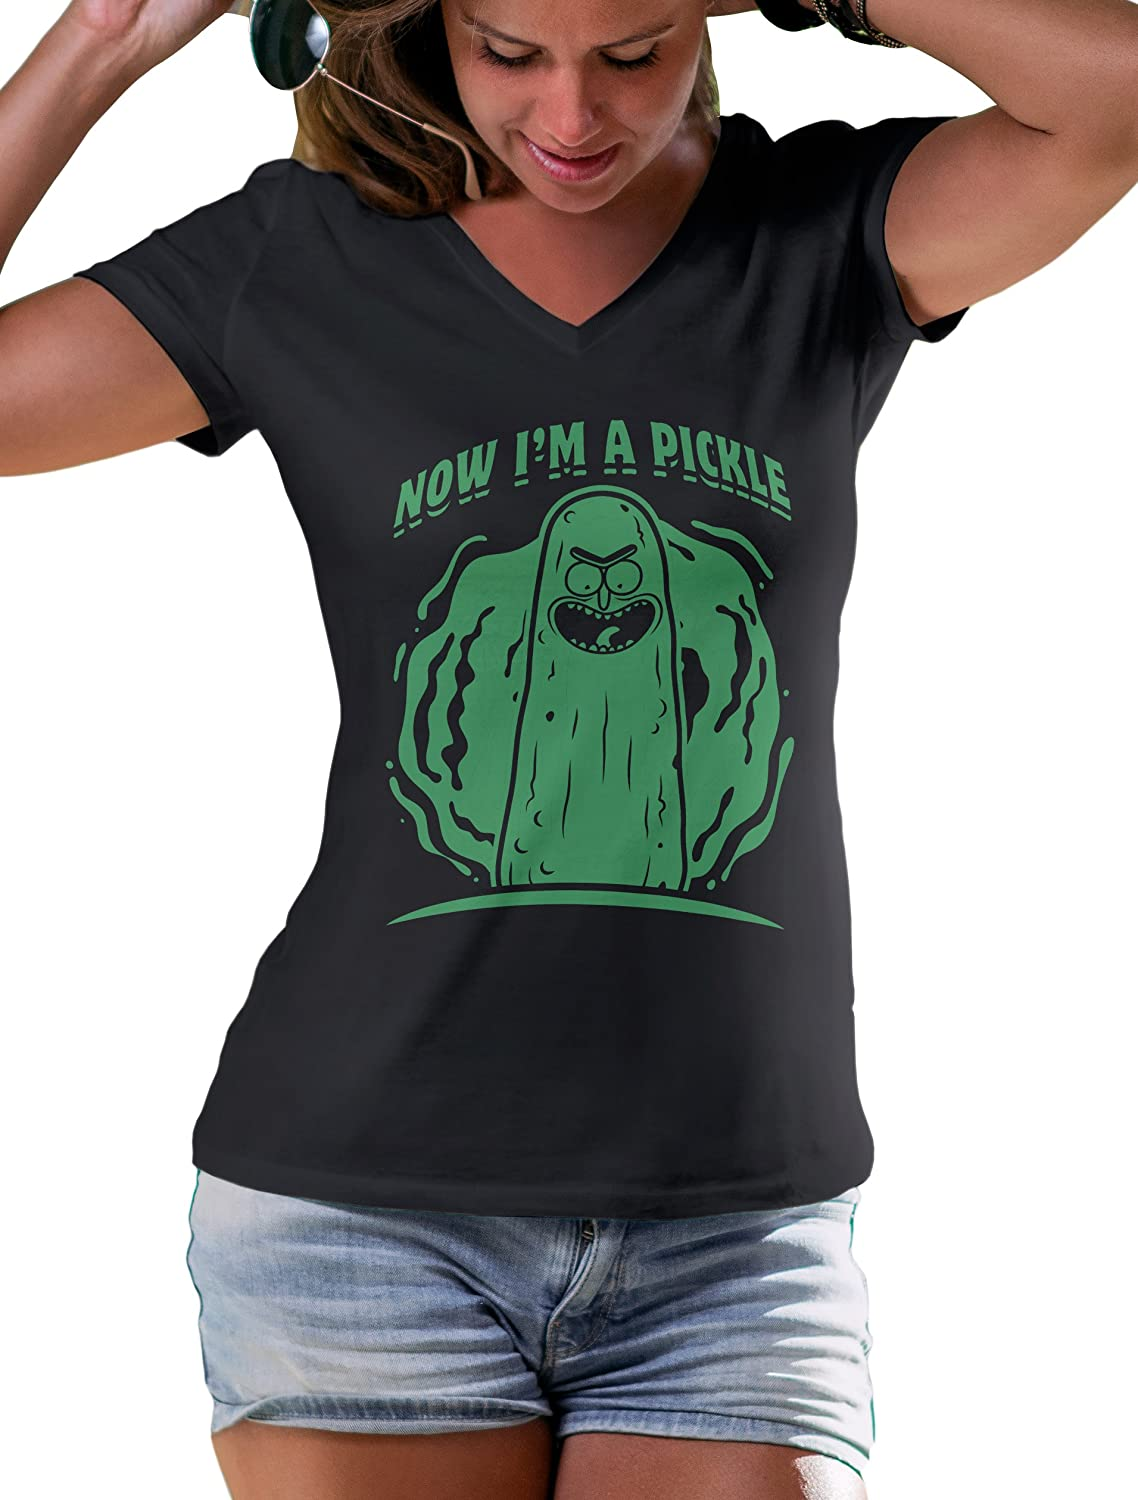 Rick and Morty Women`s T Shirt Now I'm a Pickle T-Shirt Funny Tee LeRage Shirts